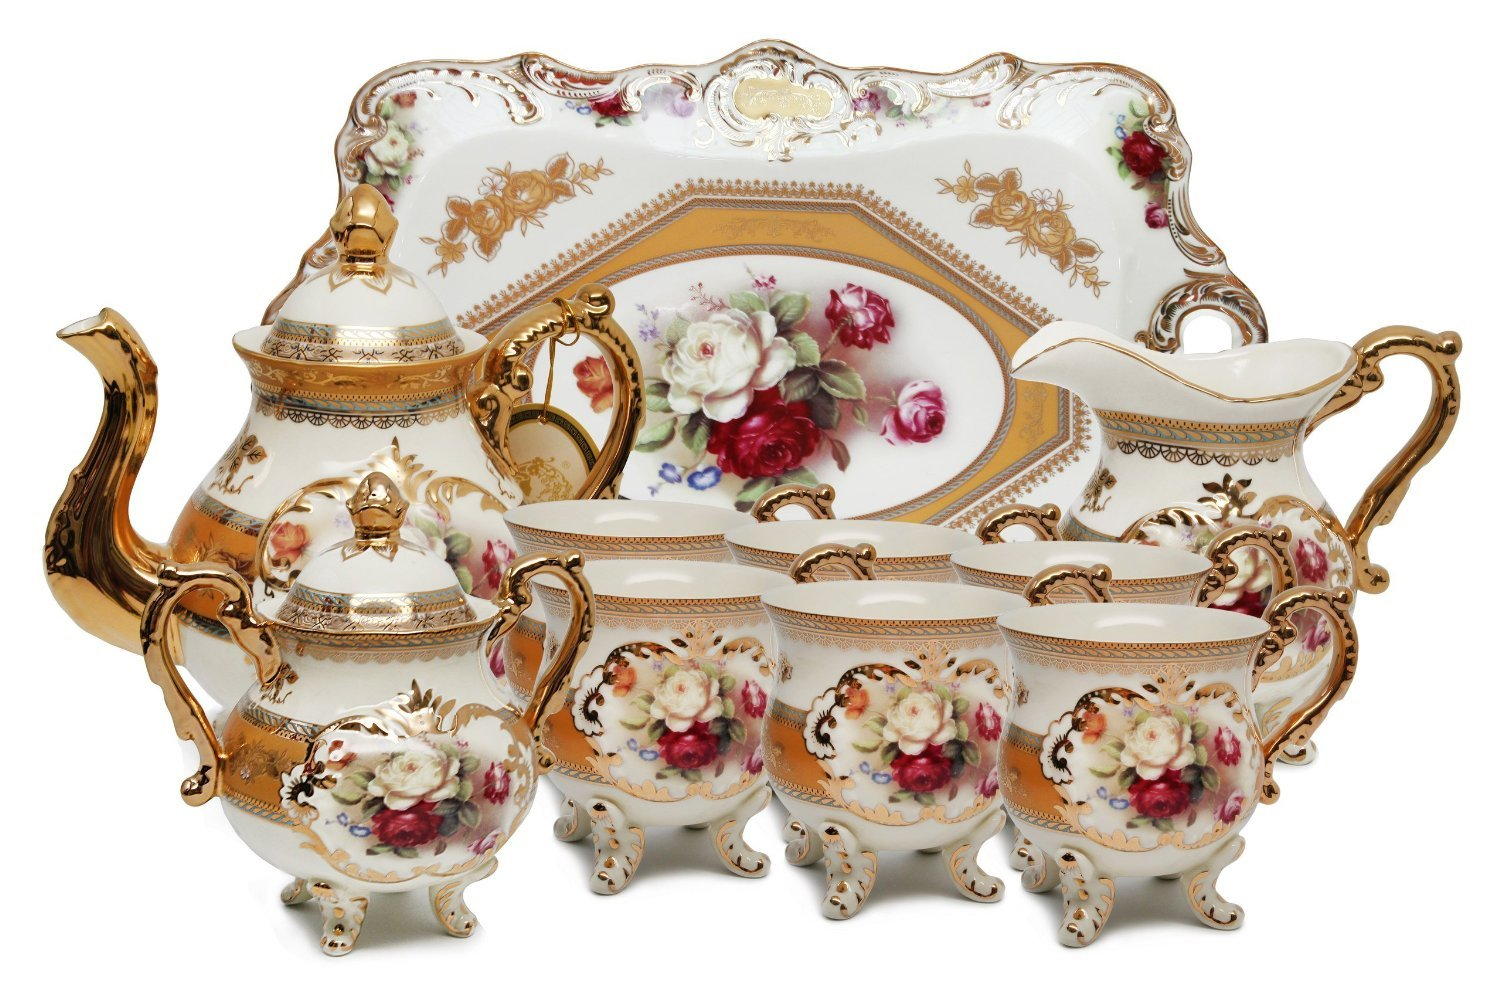 Royalty Porcelain 10-Piece Vintage Rose-Decorated Dining Tea Cup Set, Service for 6, Handmade & Hand-Painted, 24K Gold-Plated Bone China Tableware